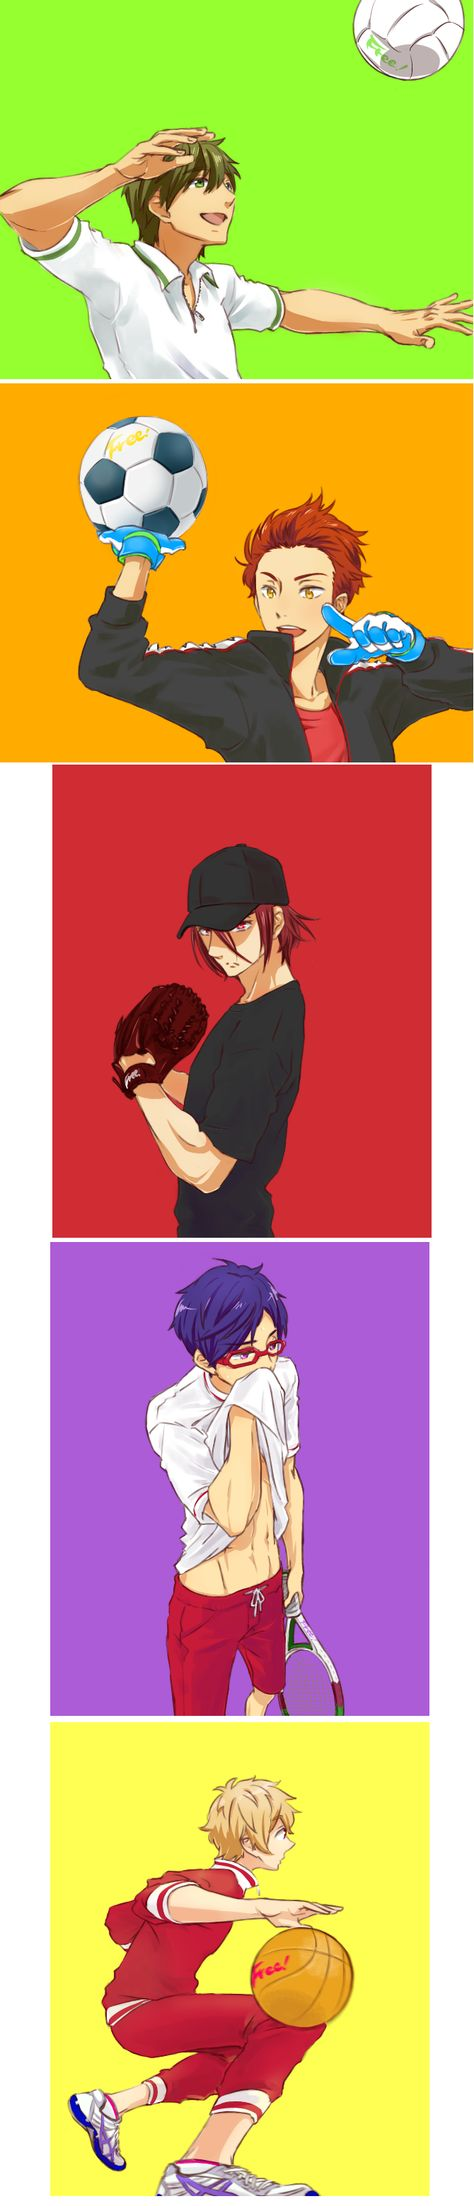 I can totally see all of them playing these other sports. And Haru's still in the pool because he only swims free. XP